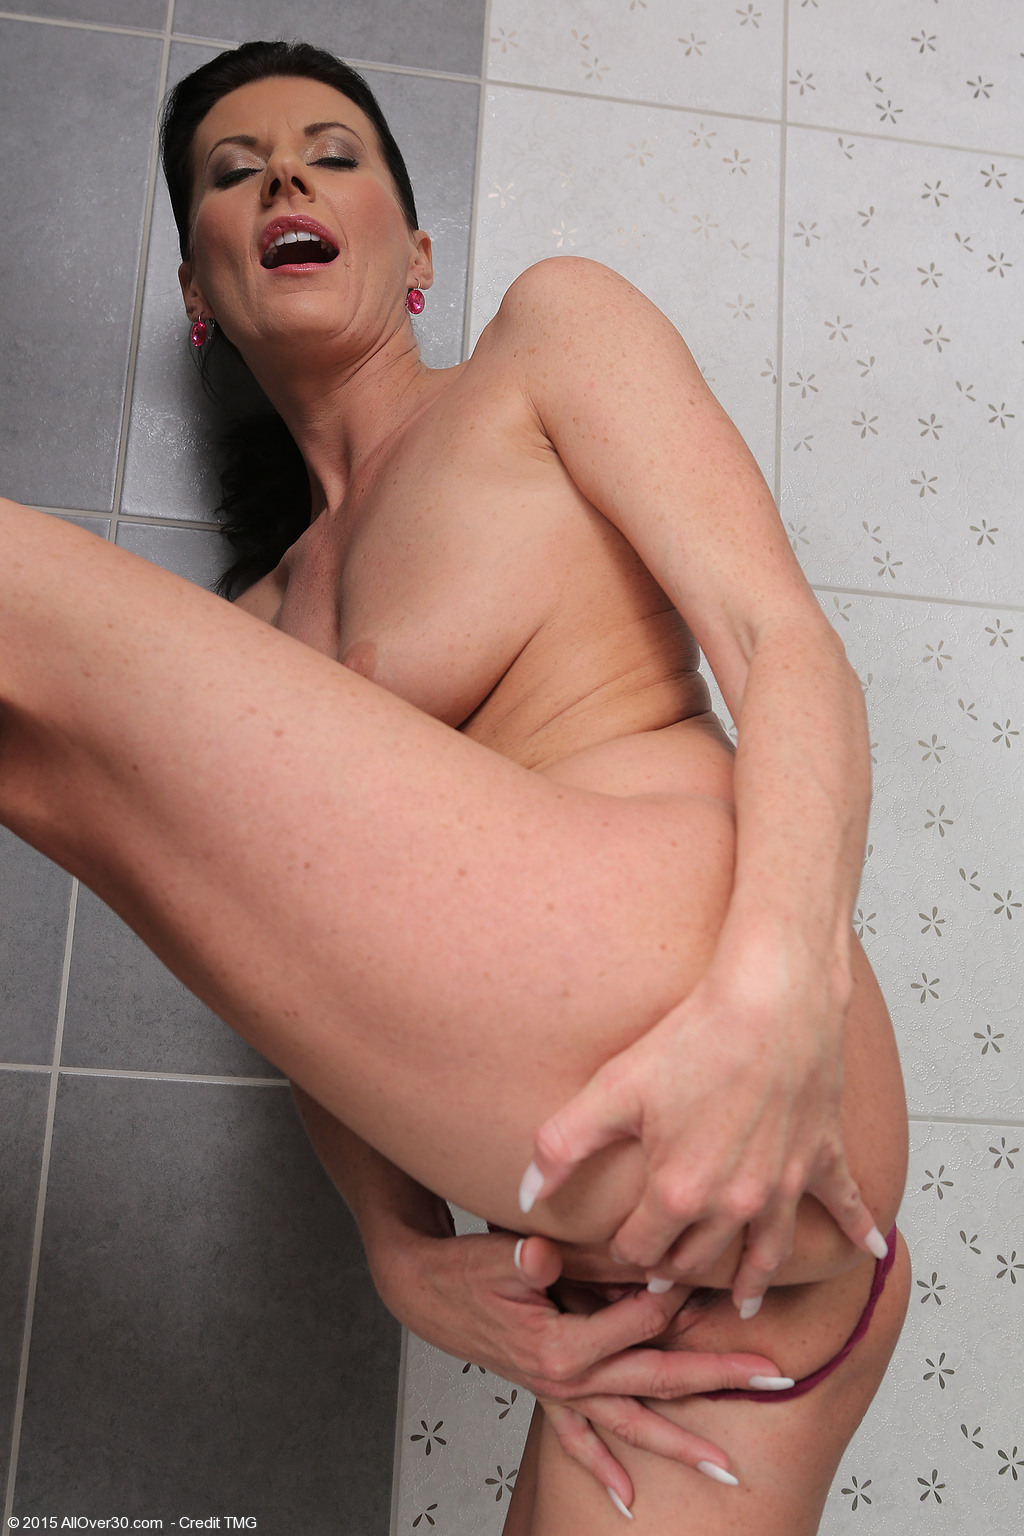 Naked in shower